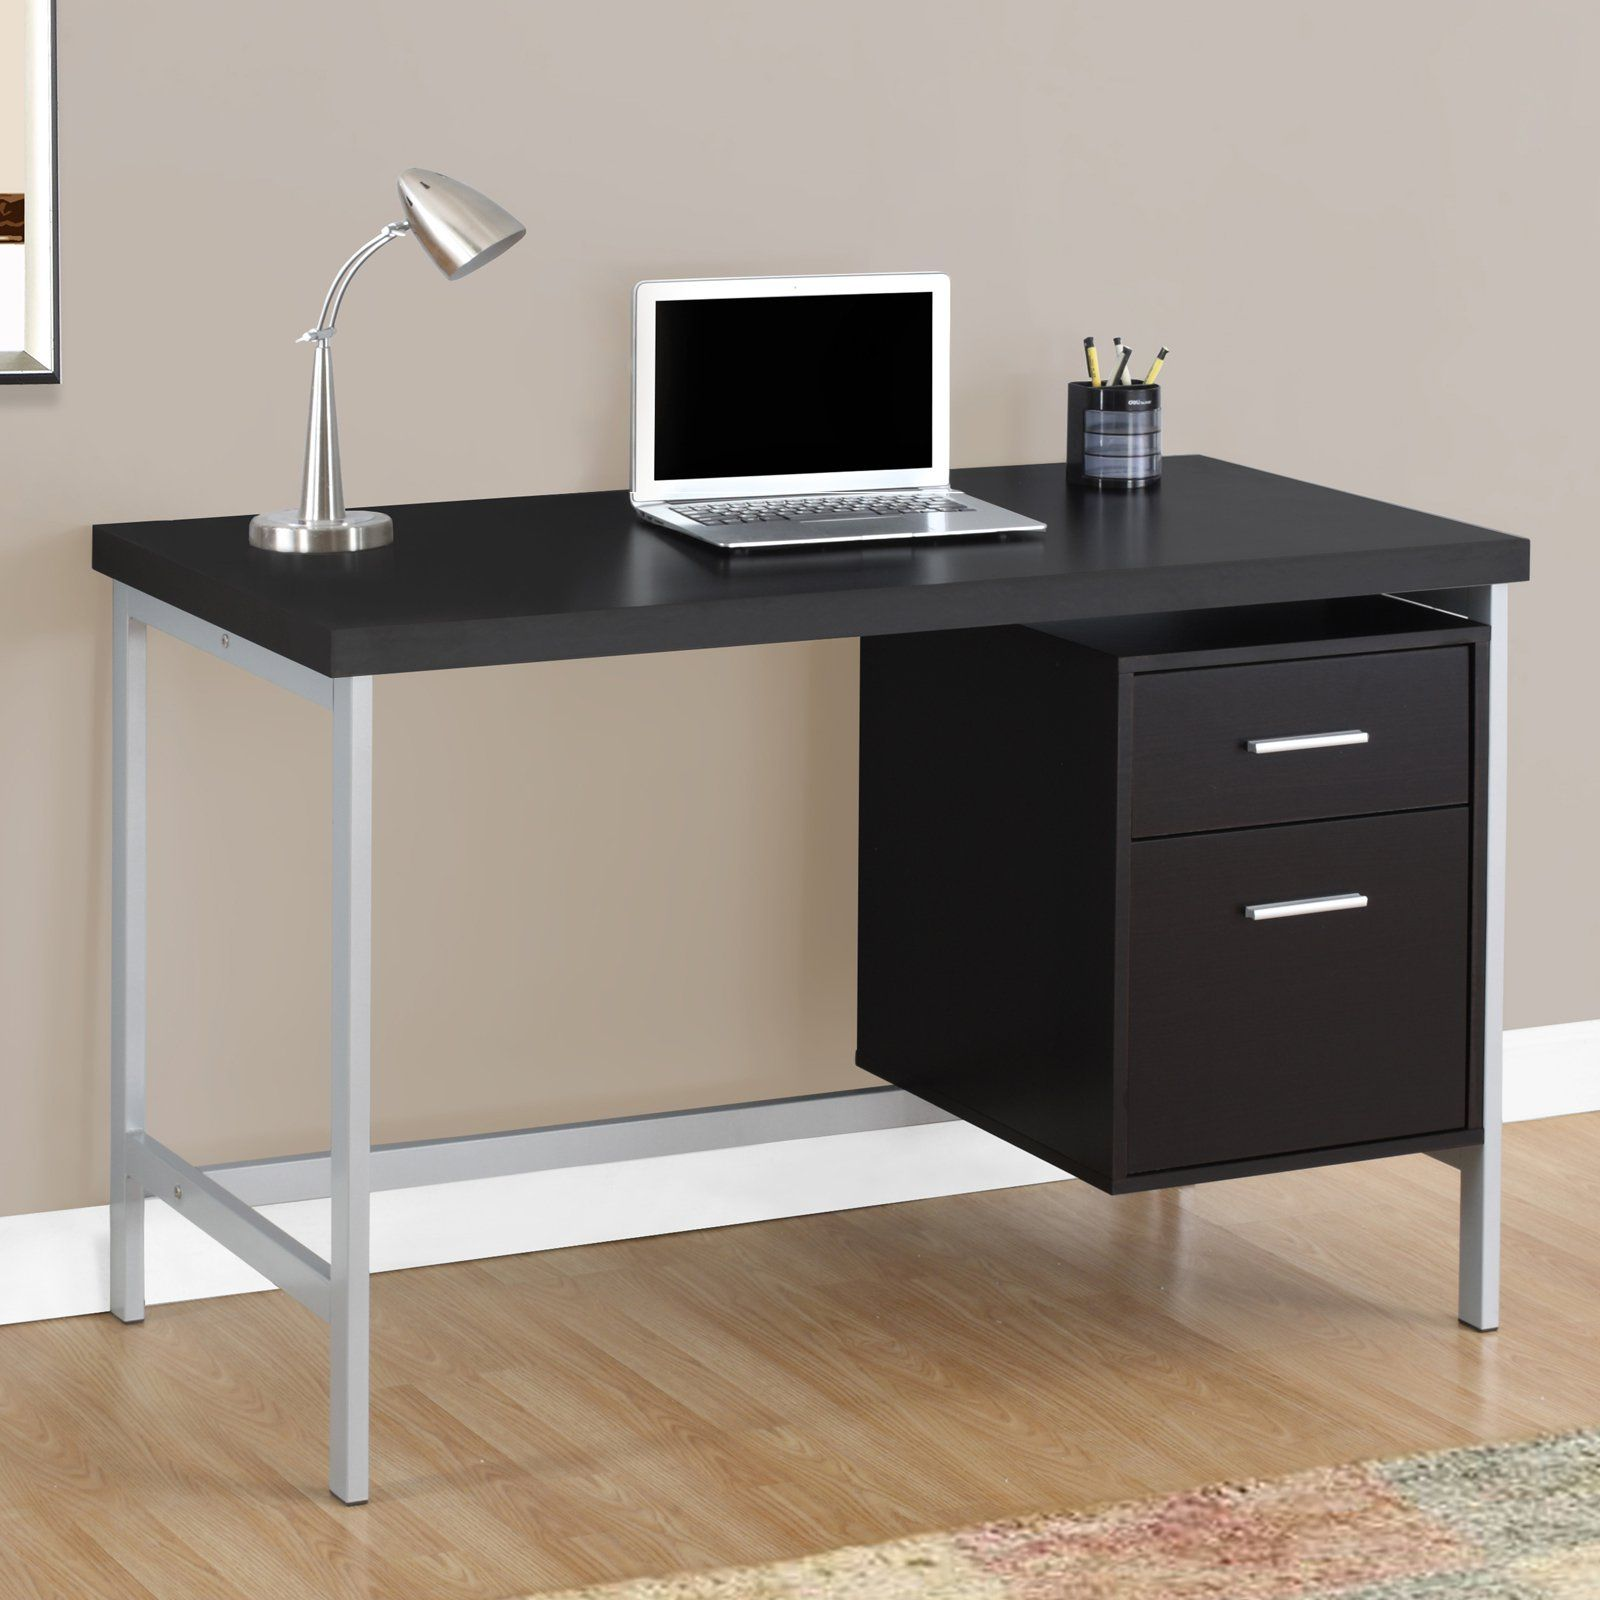 bisley pin for office under desks your wrap storage and bite temporary pedestals permanently desk over bench around mobile